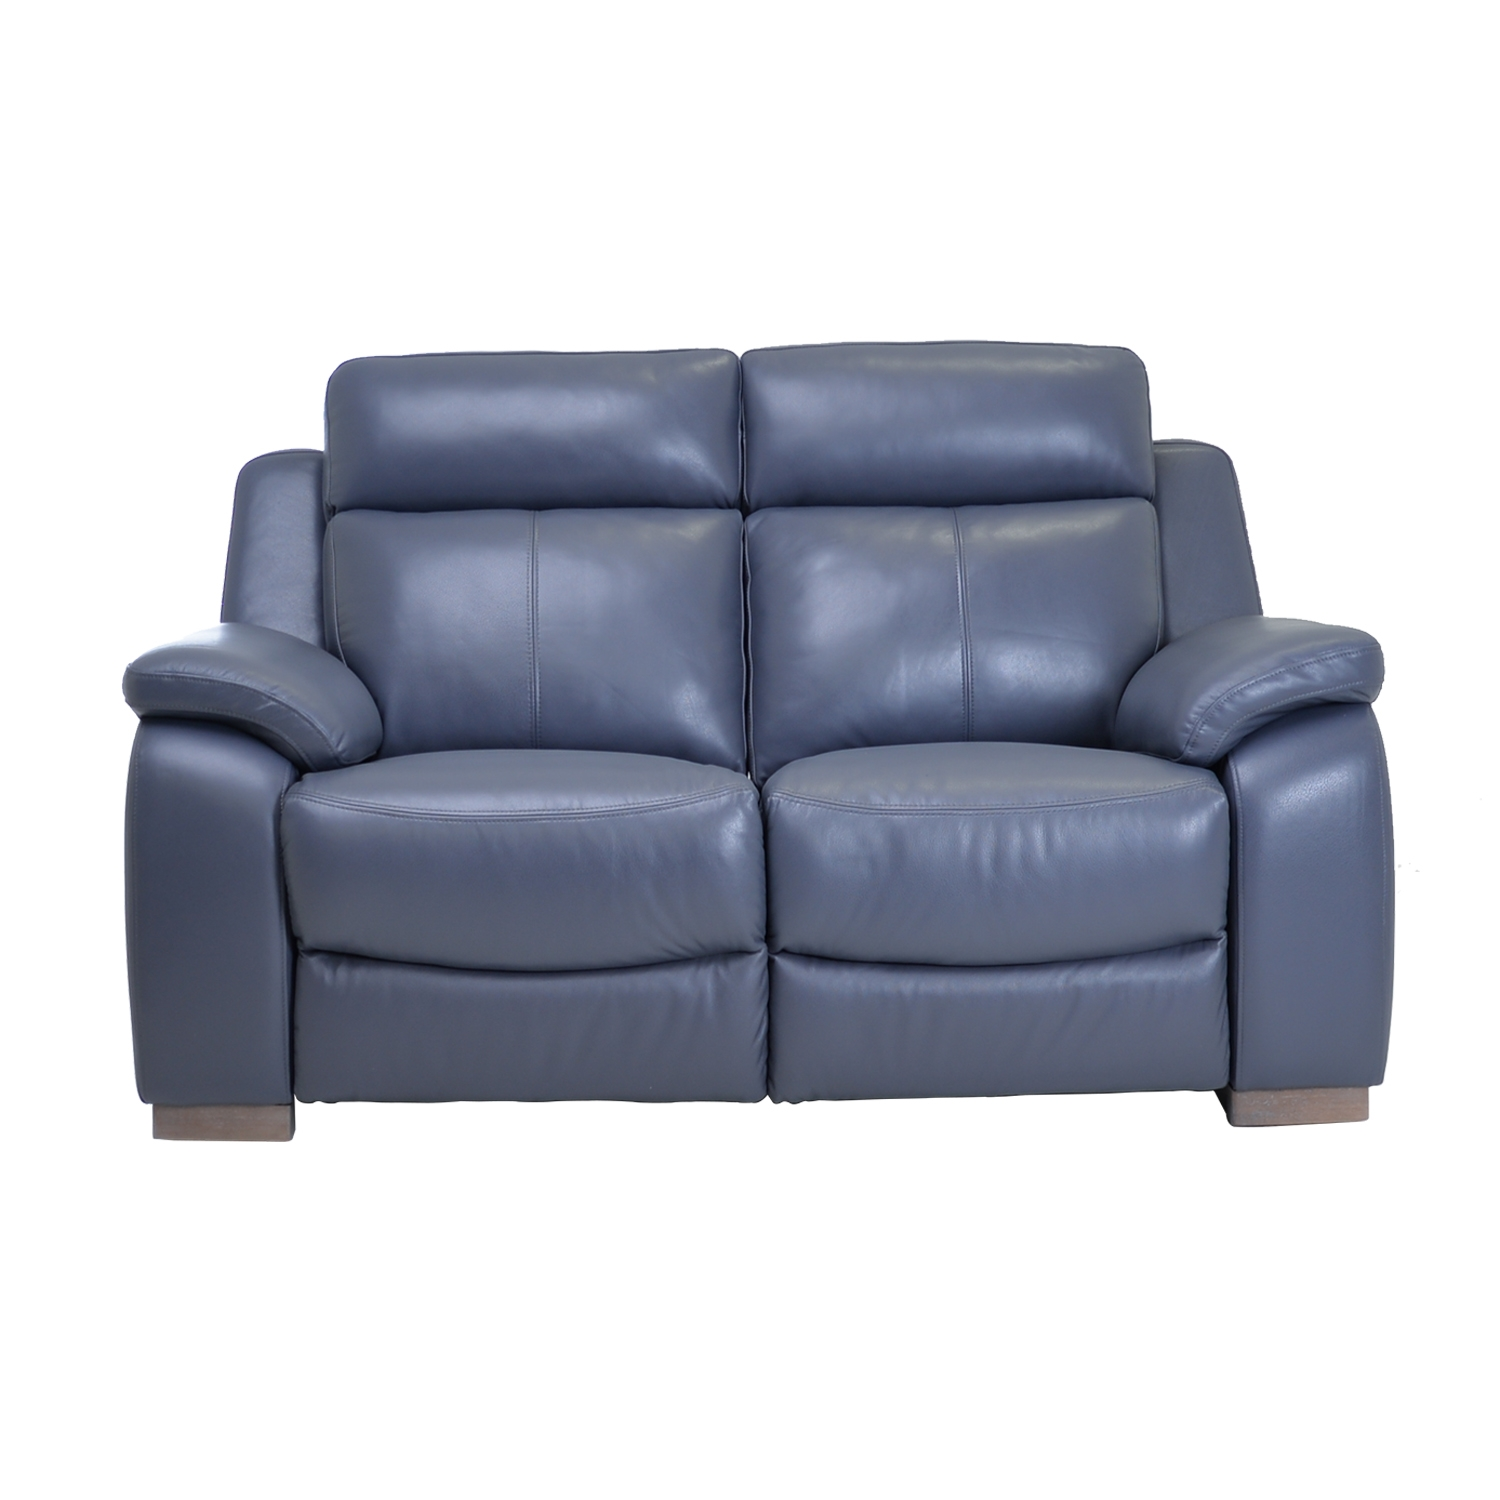 Image of Casa Alabama 2 Seater Leather Power Recliner, Lavender Grey